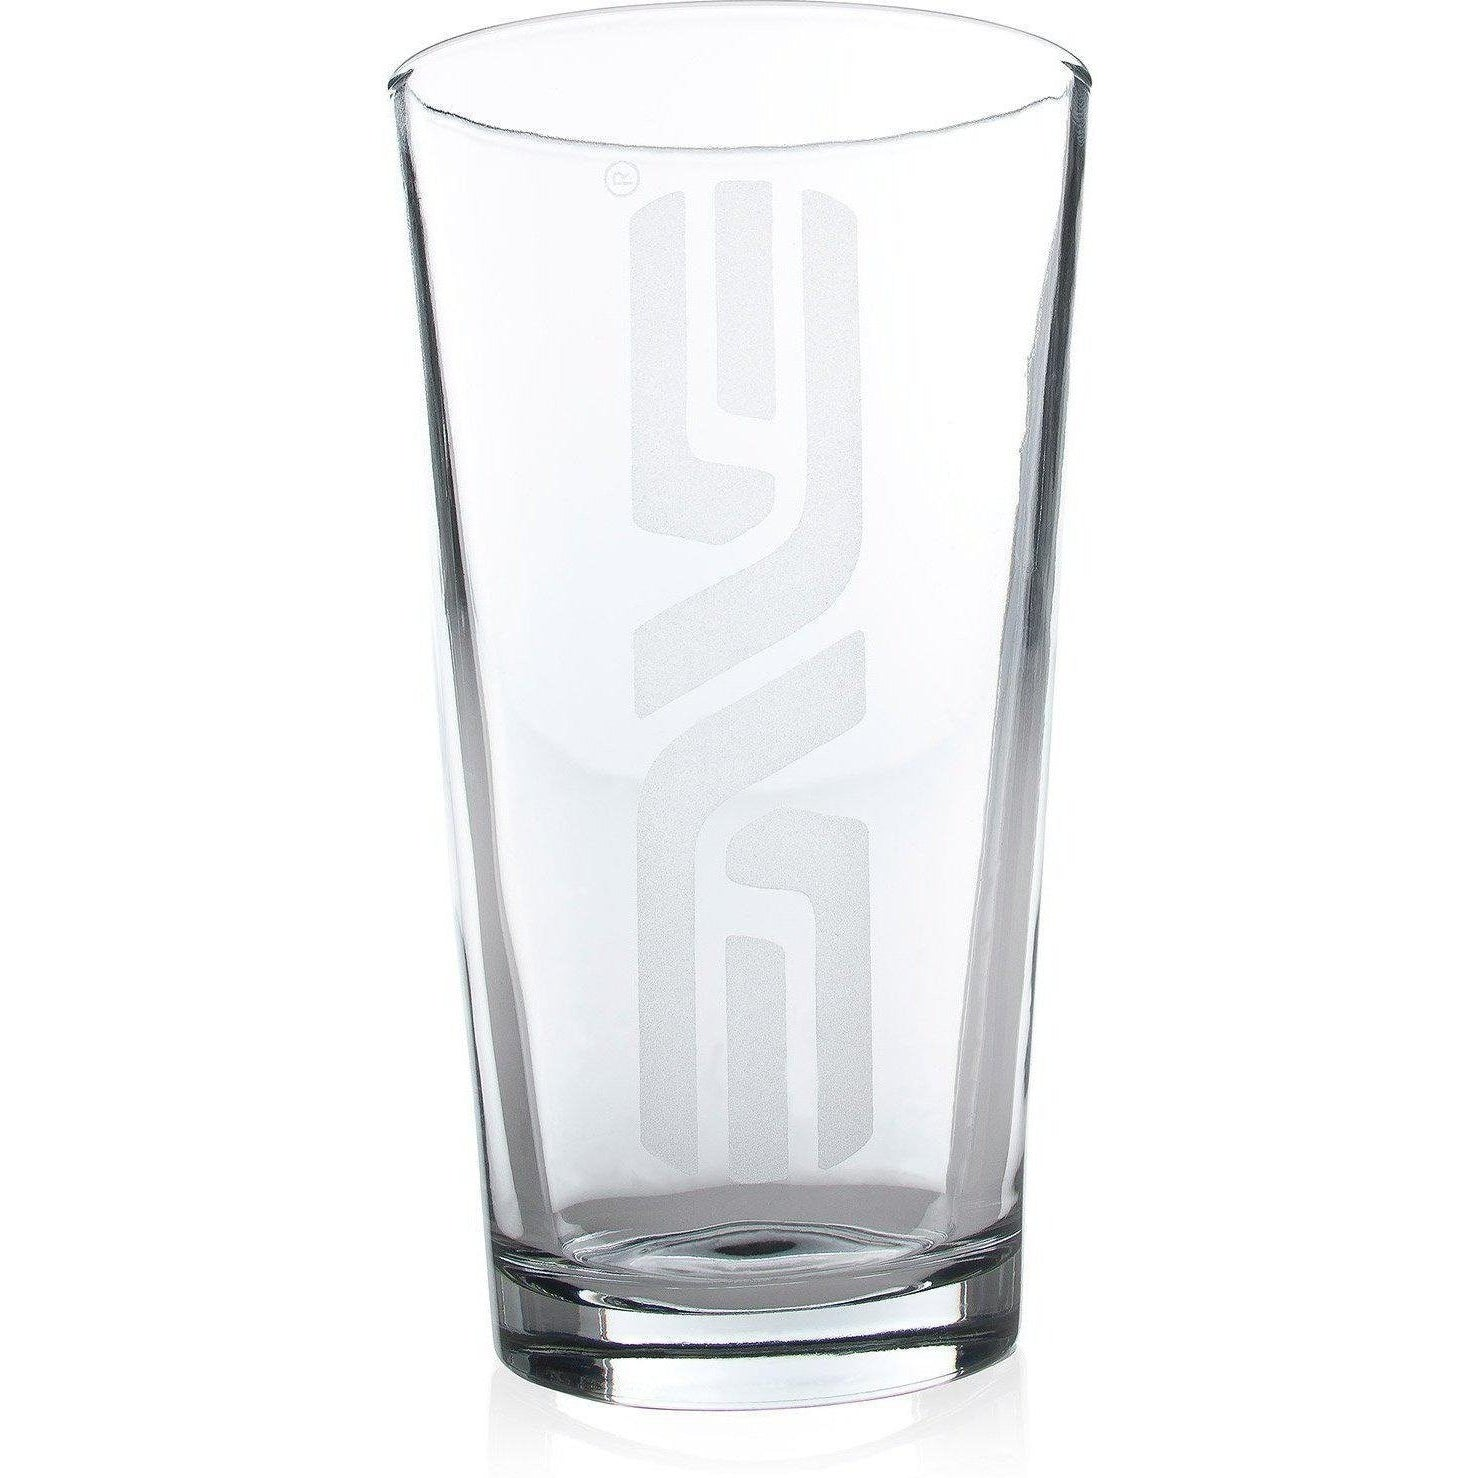 ENVE-ENVE Glass-Clear-473ml / 16oz-EN7700120-saddleback-elite-performance-cycling